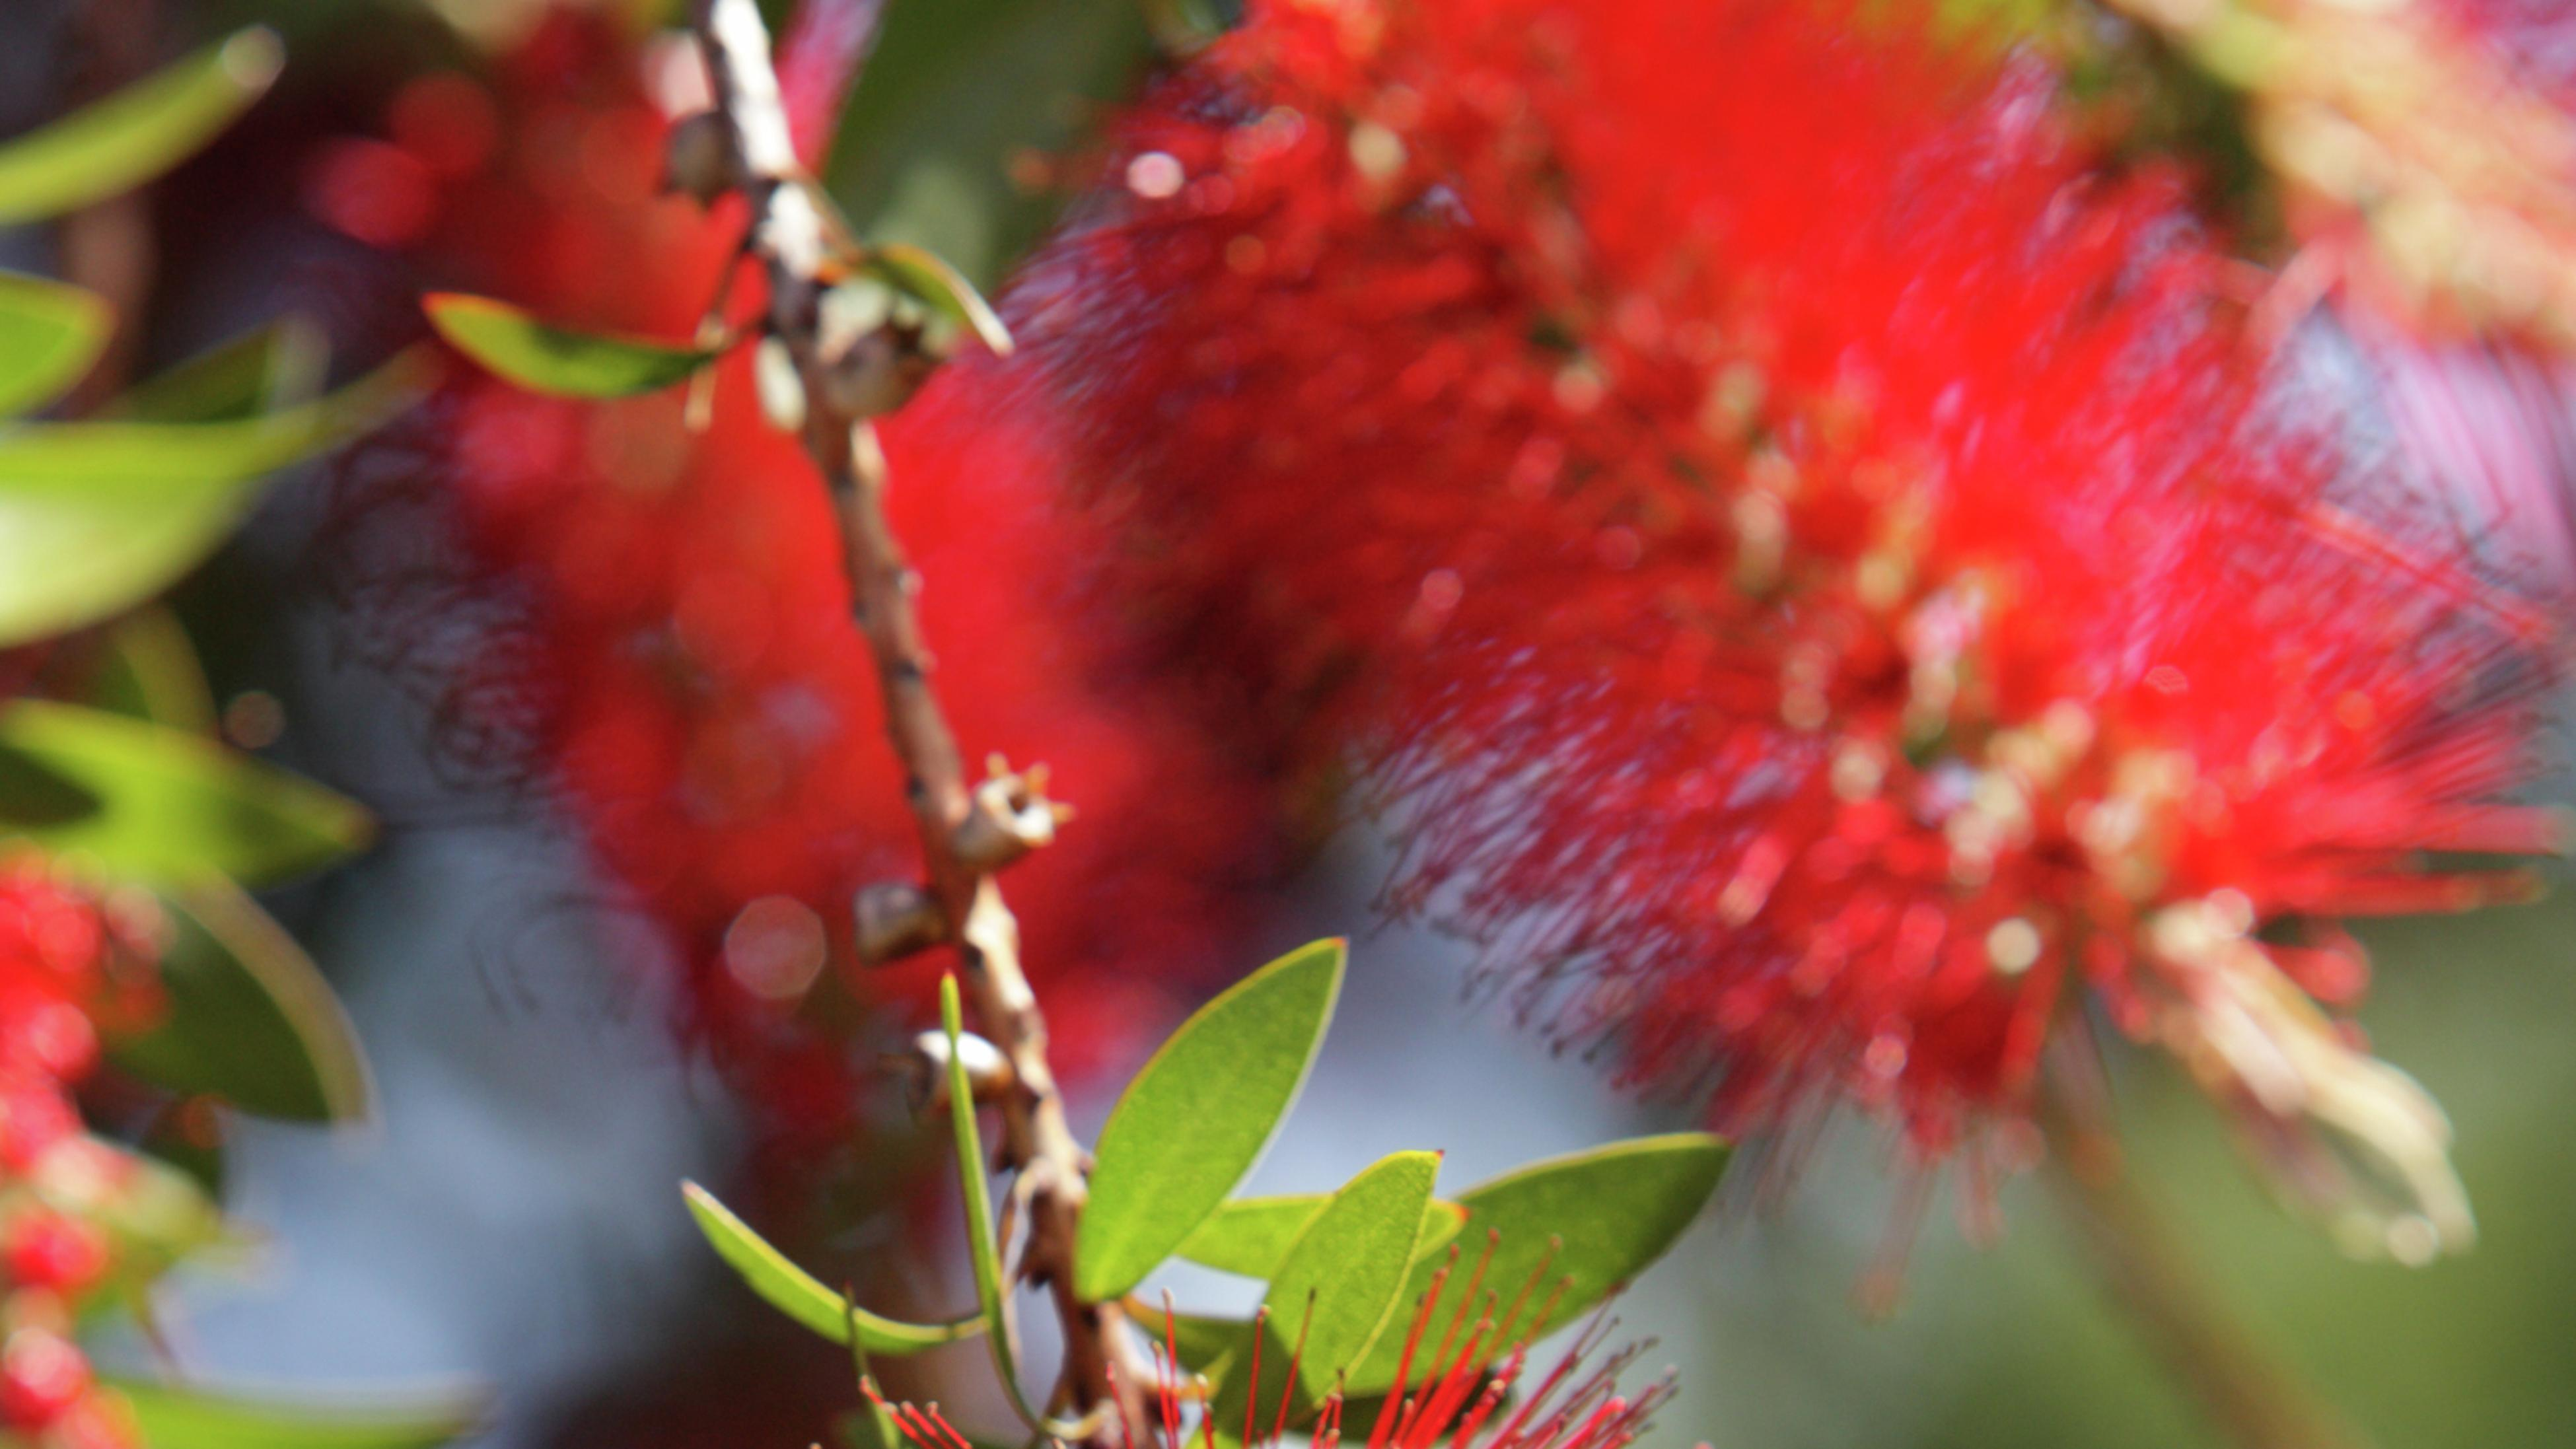 close up shot of a bottlebrush with its red stems